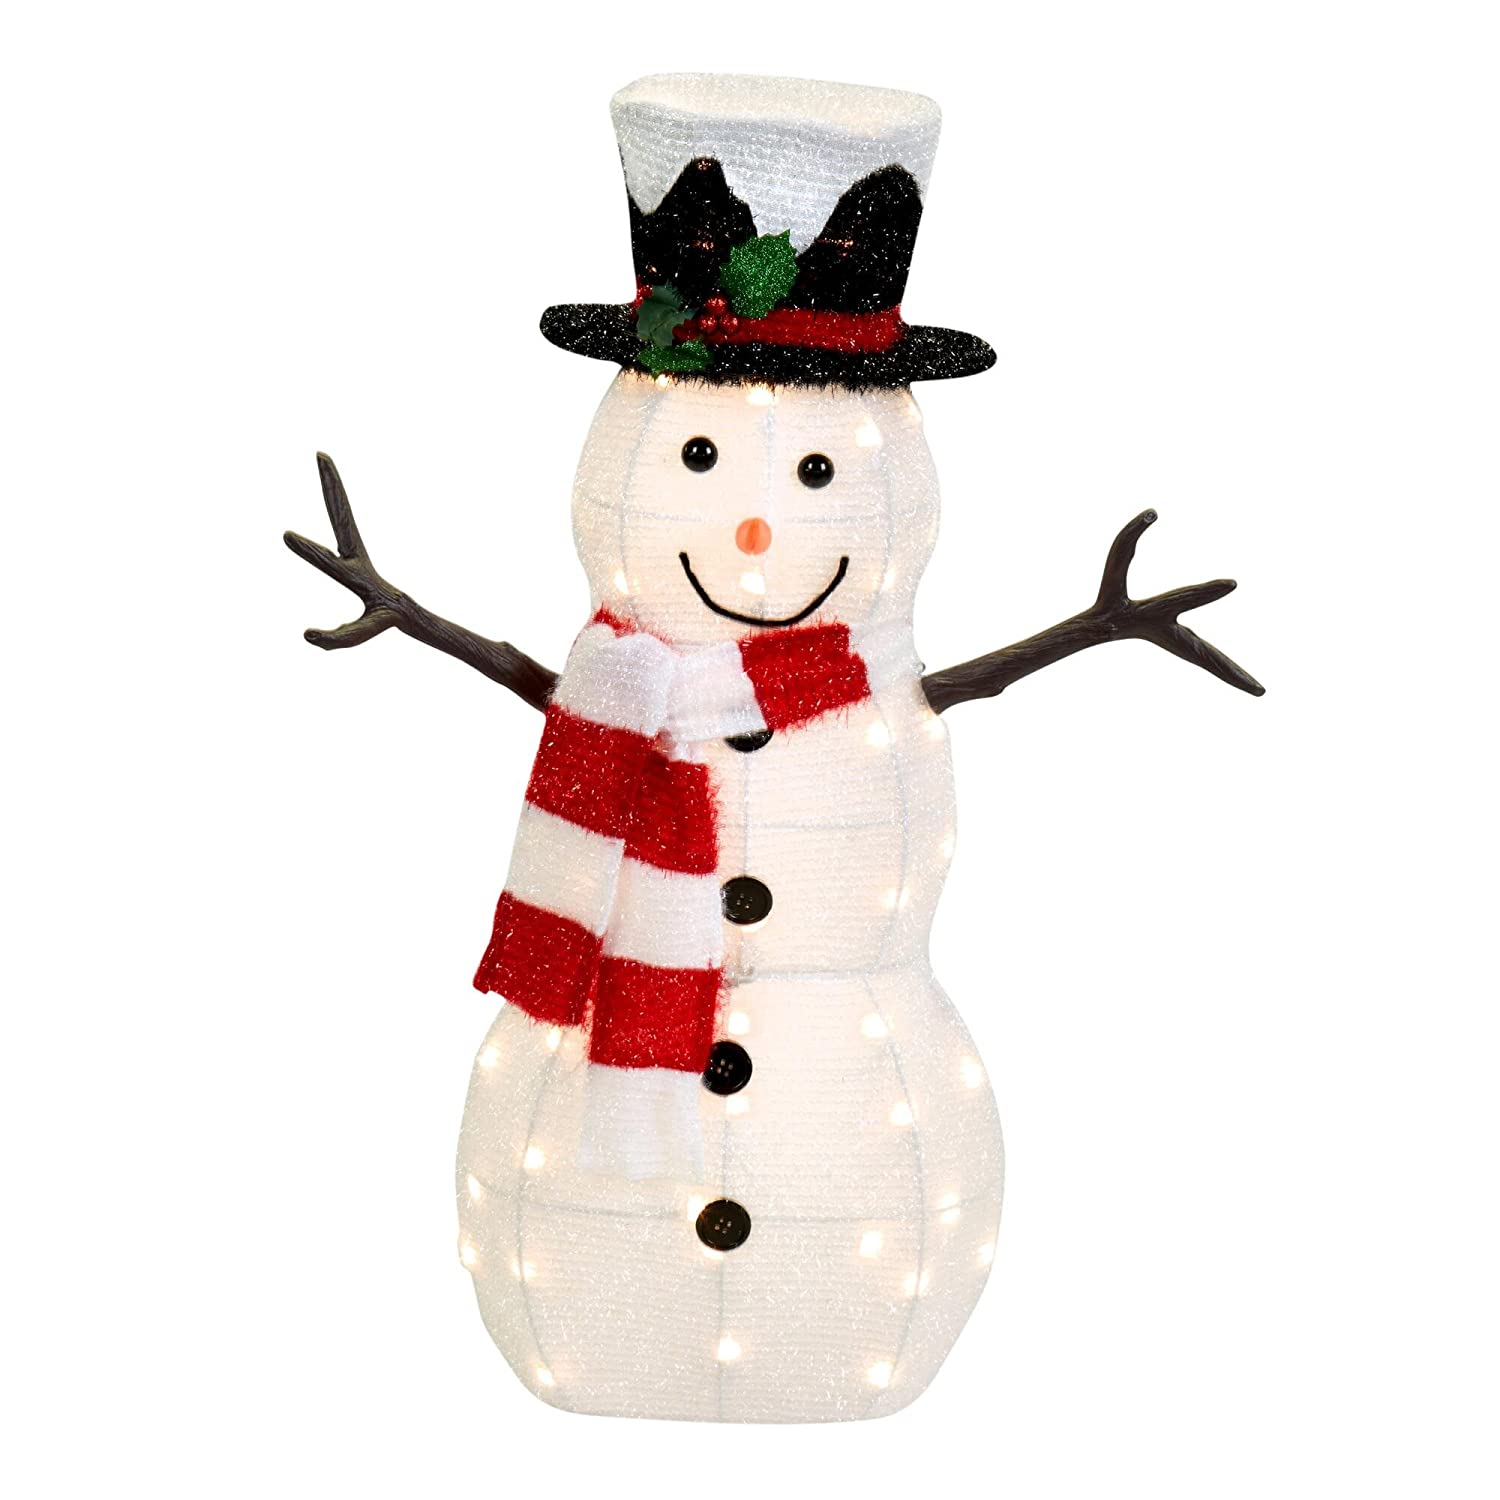 Snowman lighted yard displays christmas wikii for 36 countdown to christmas snowman yard decoration